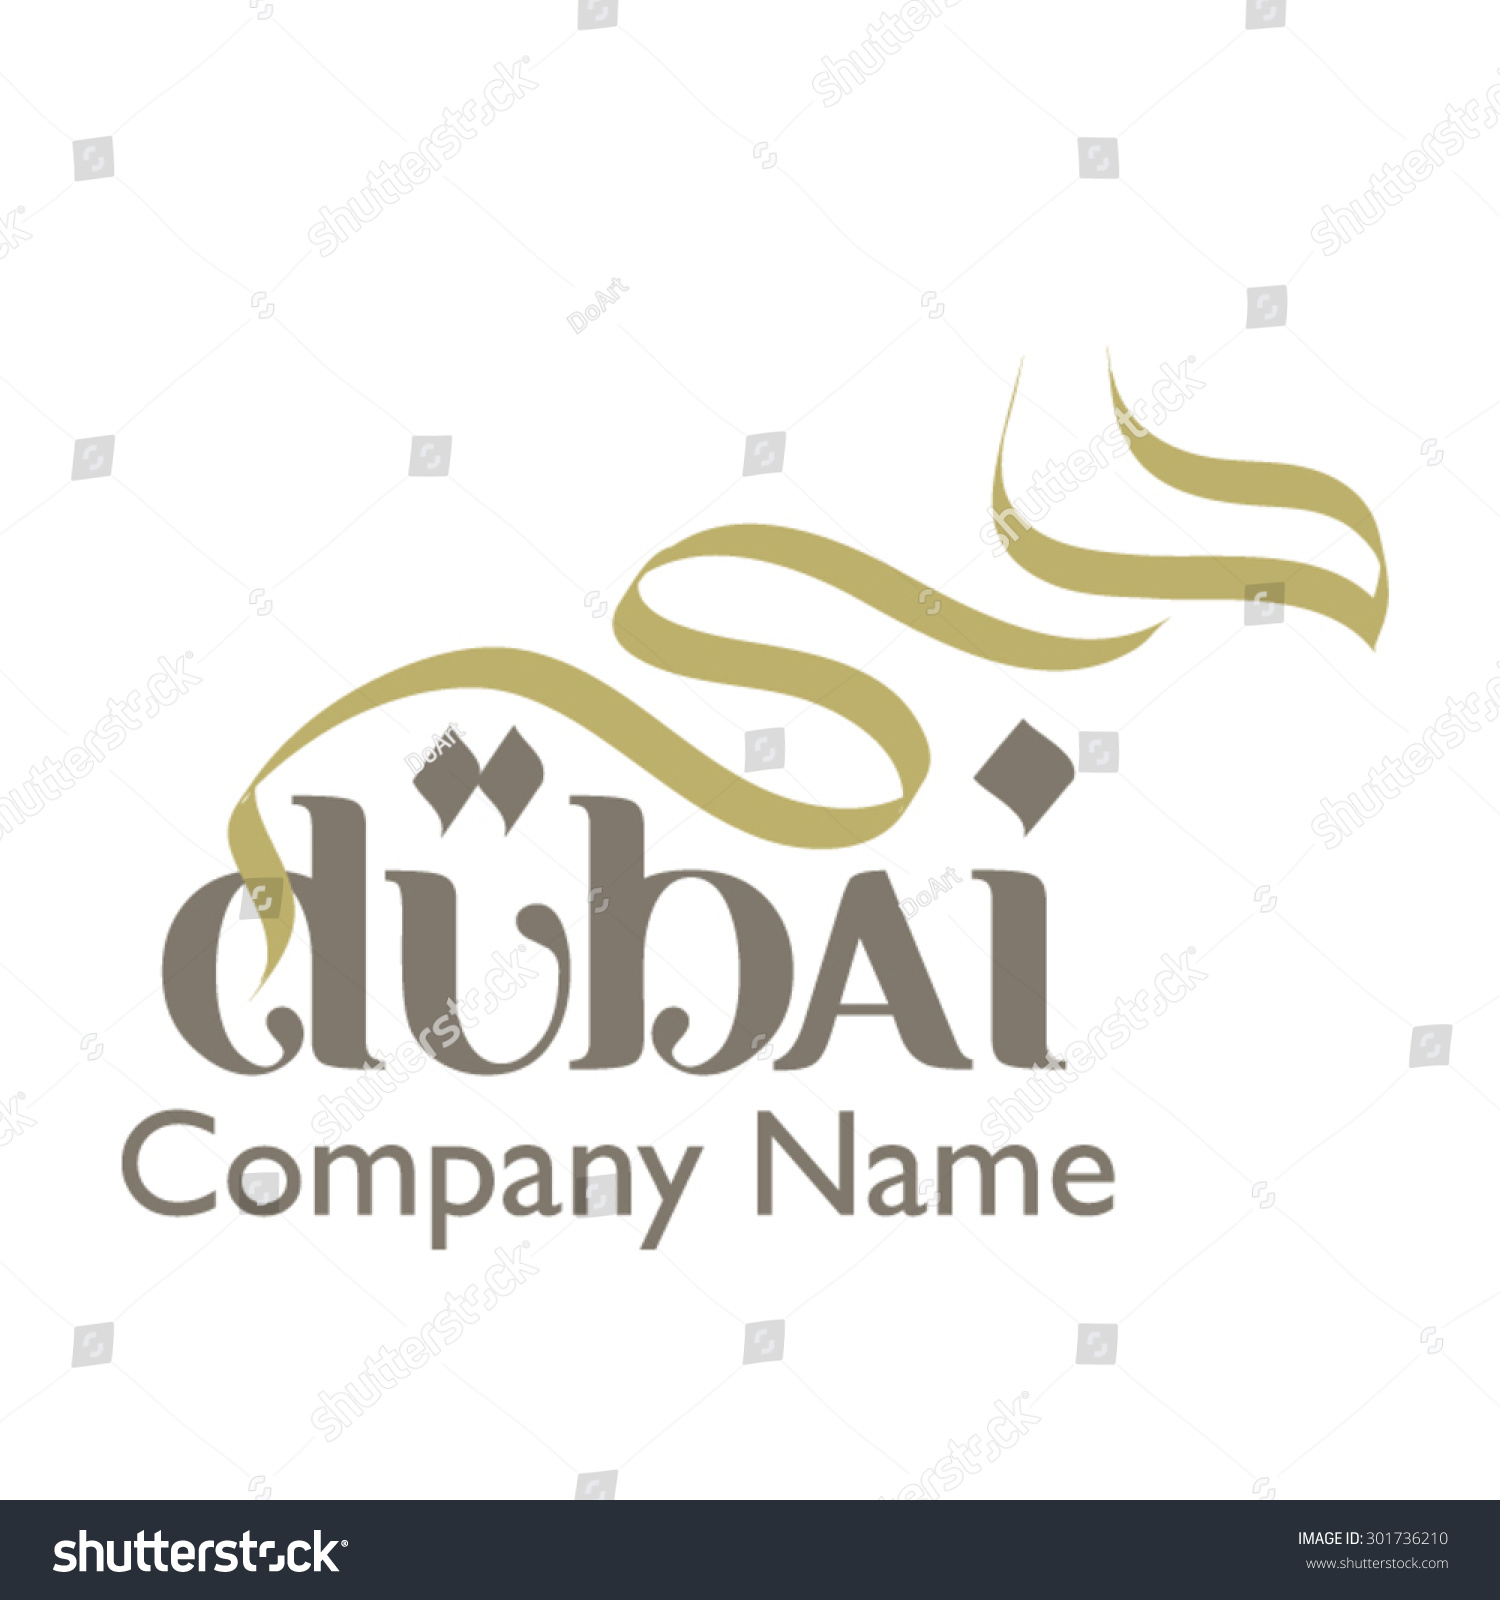 Dubai logo illustrator file created by stock vector Calligraphy logo